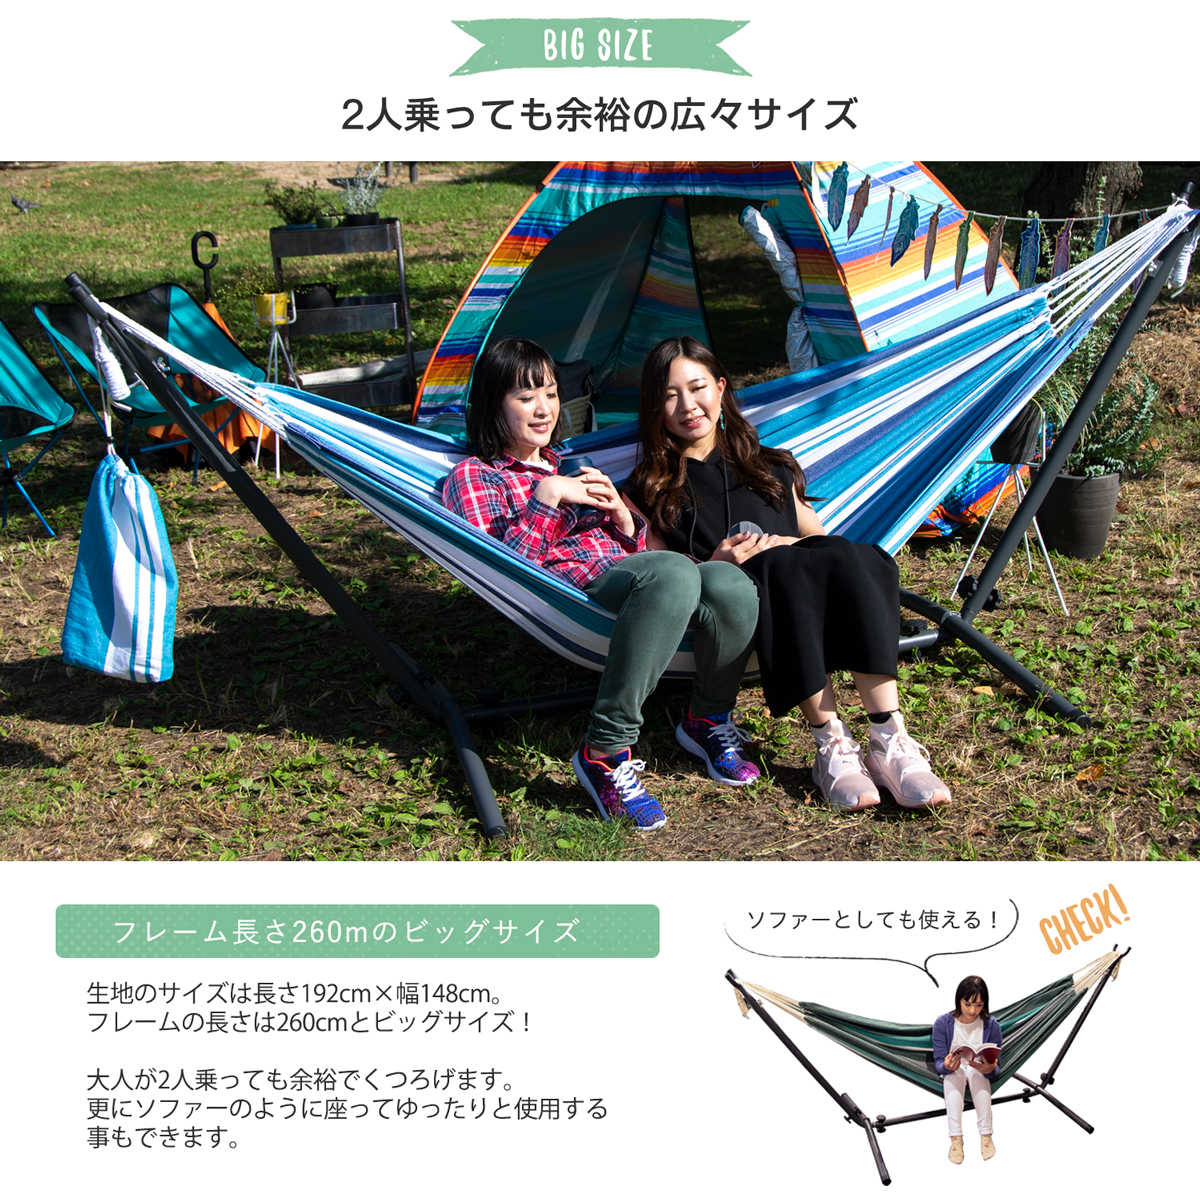 It Is Camping In Christmas Present Winter In The Large Size Stands Hammock Chair Room Room Outside Outdoors Outdoor Compact Camping Equipment Leisure